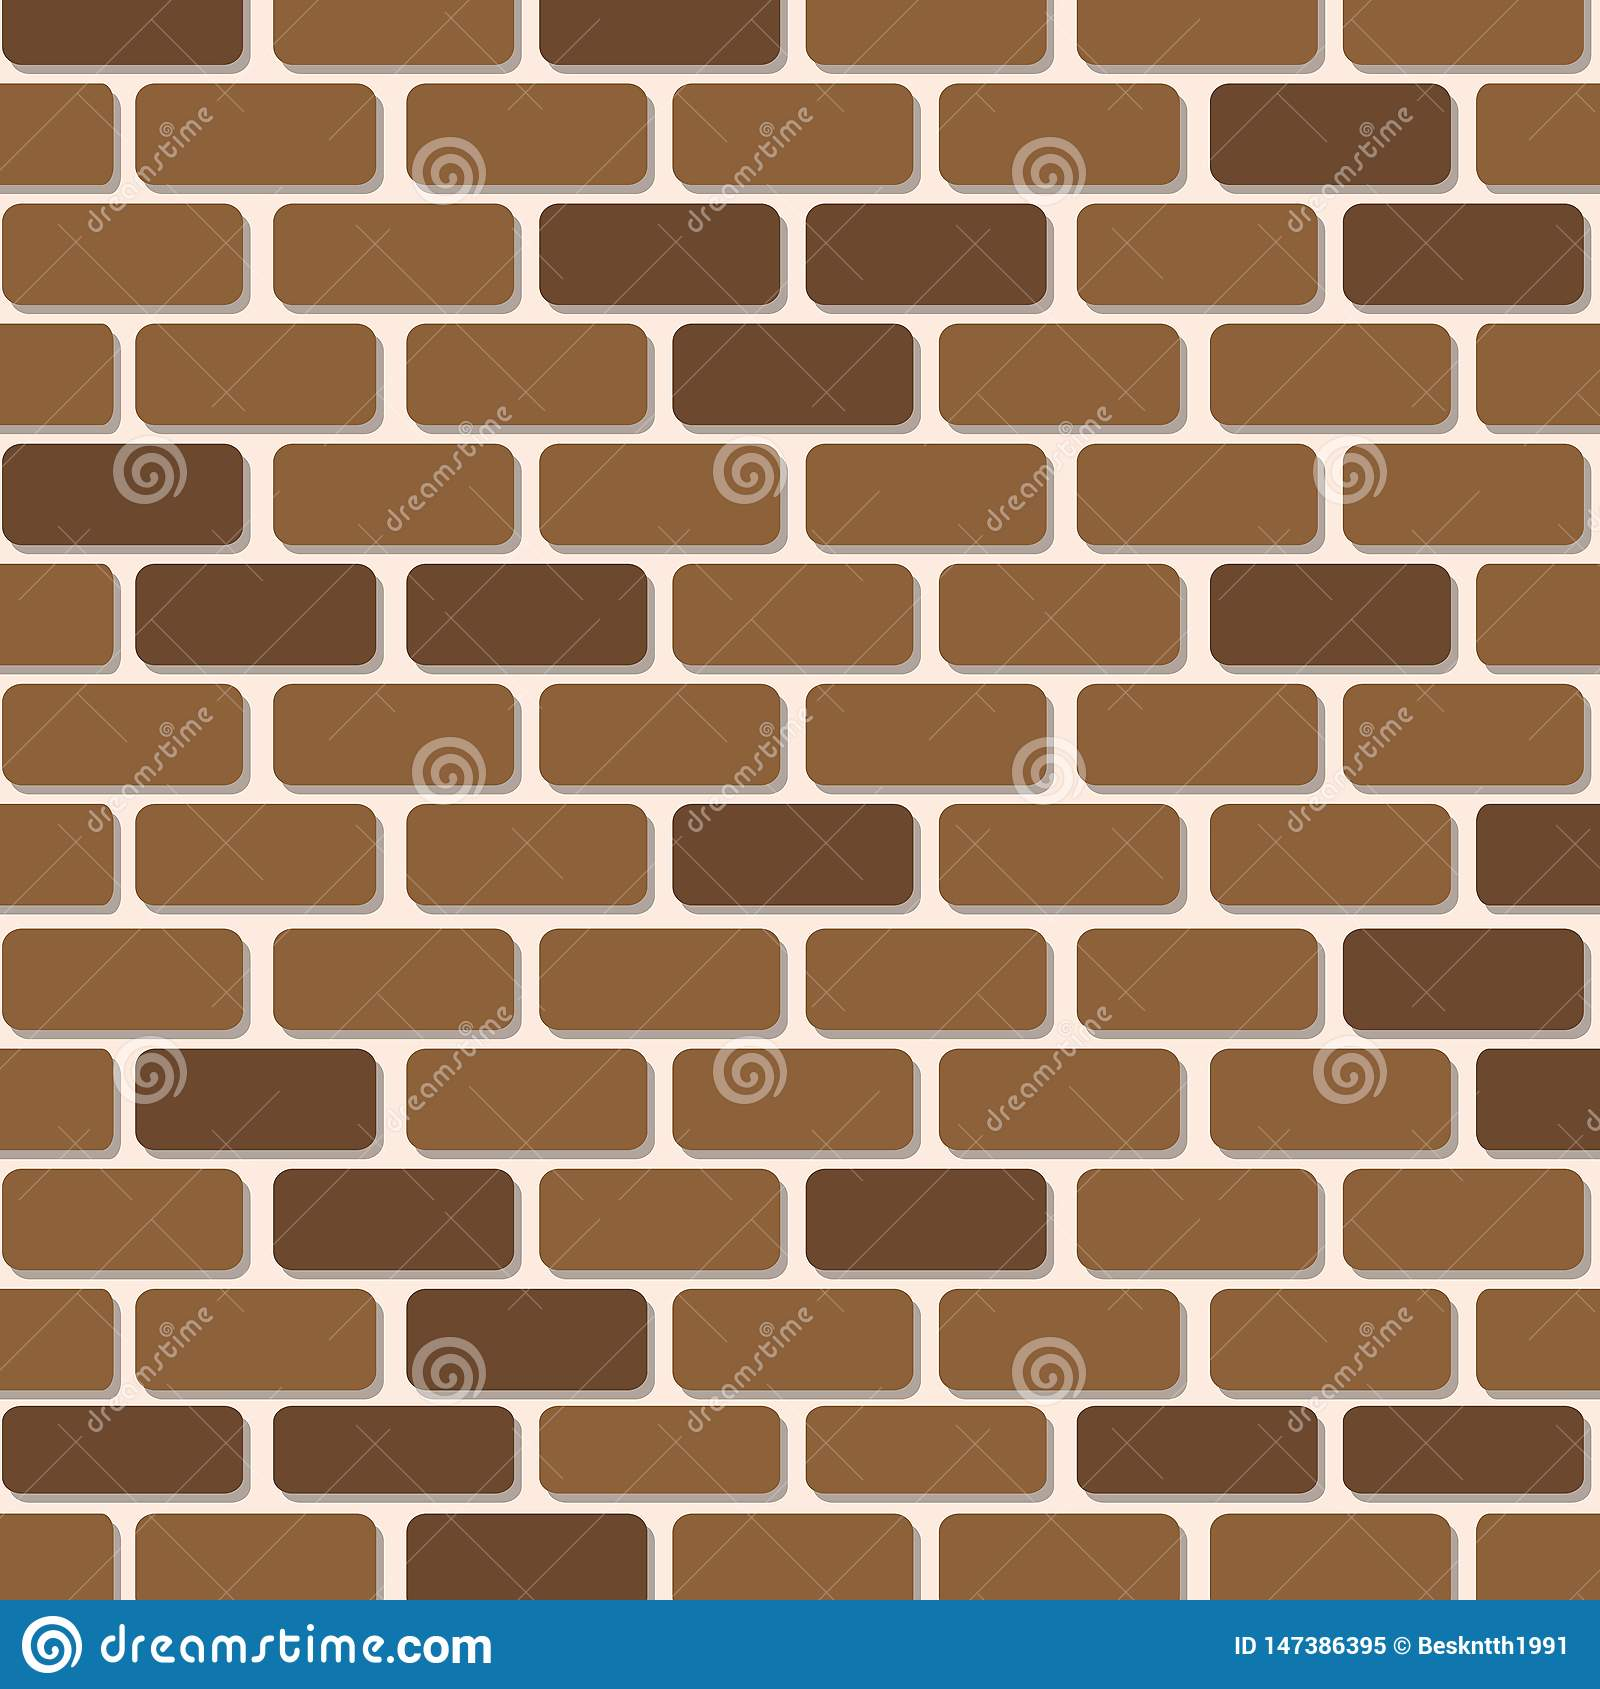 Brick wall paper artwork for background.